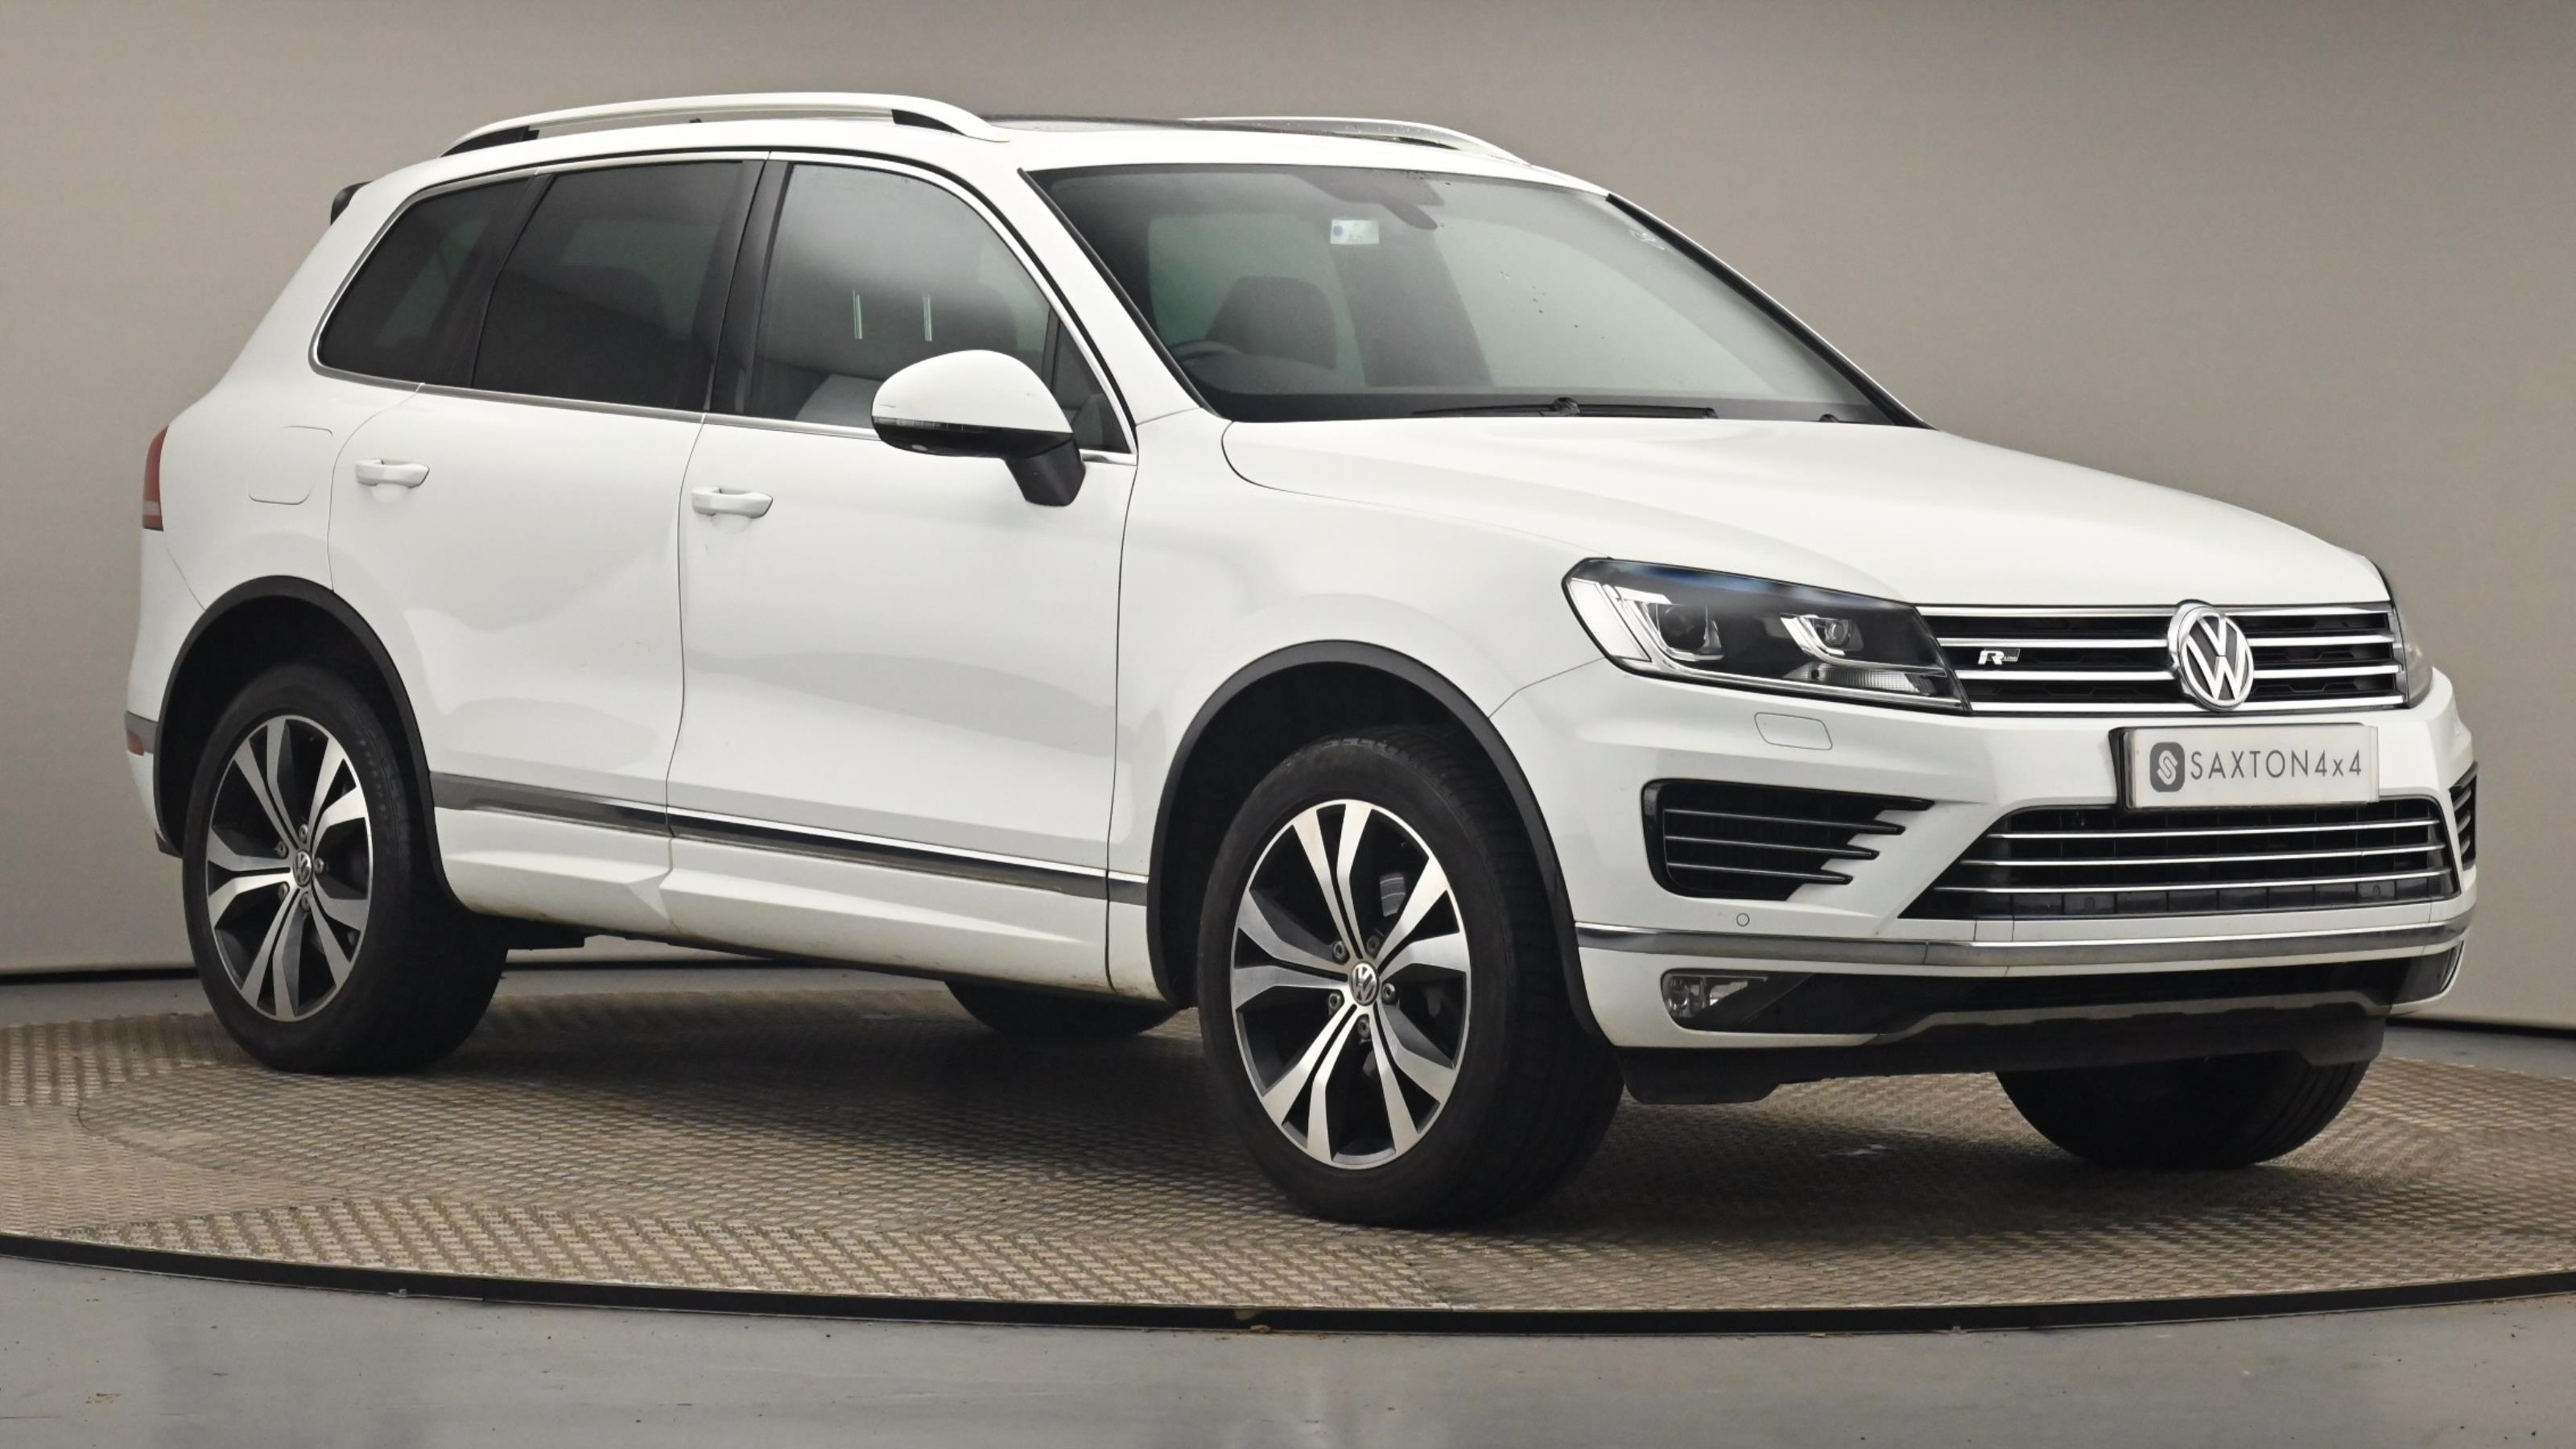 Used 2016 Volkswagen TOUAREG 3.0 V6 TDI BlueMotion Tech 262 R Line 5dr Tip Auto WHITE at Saxton4x4